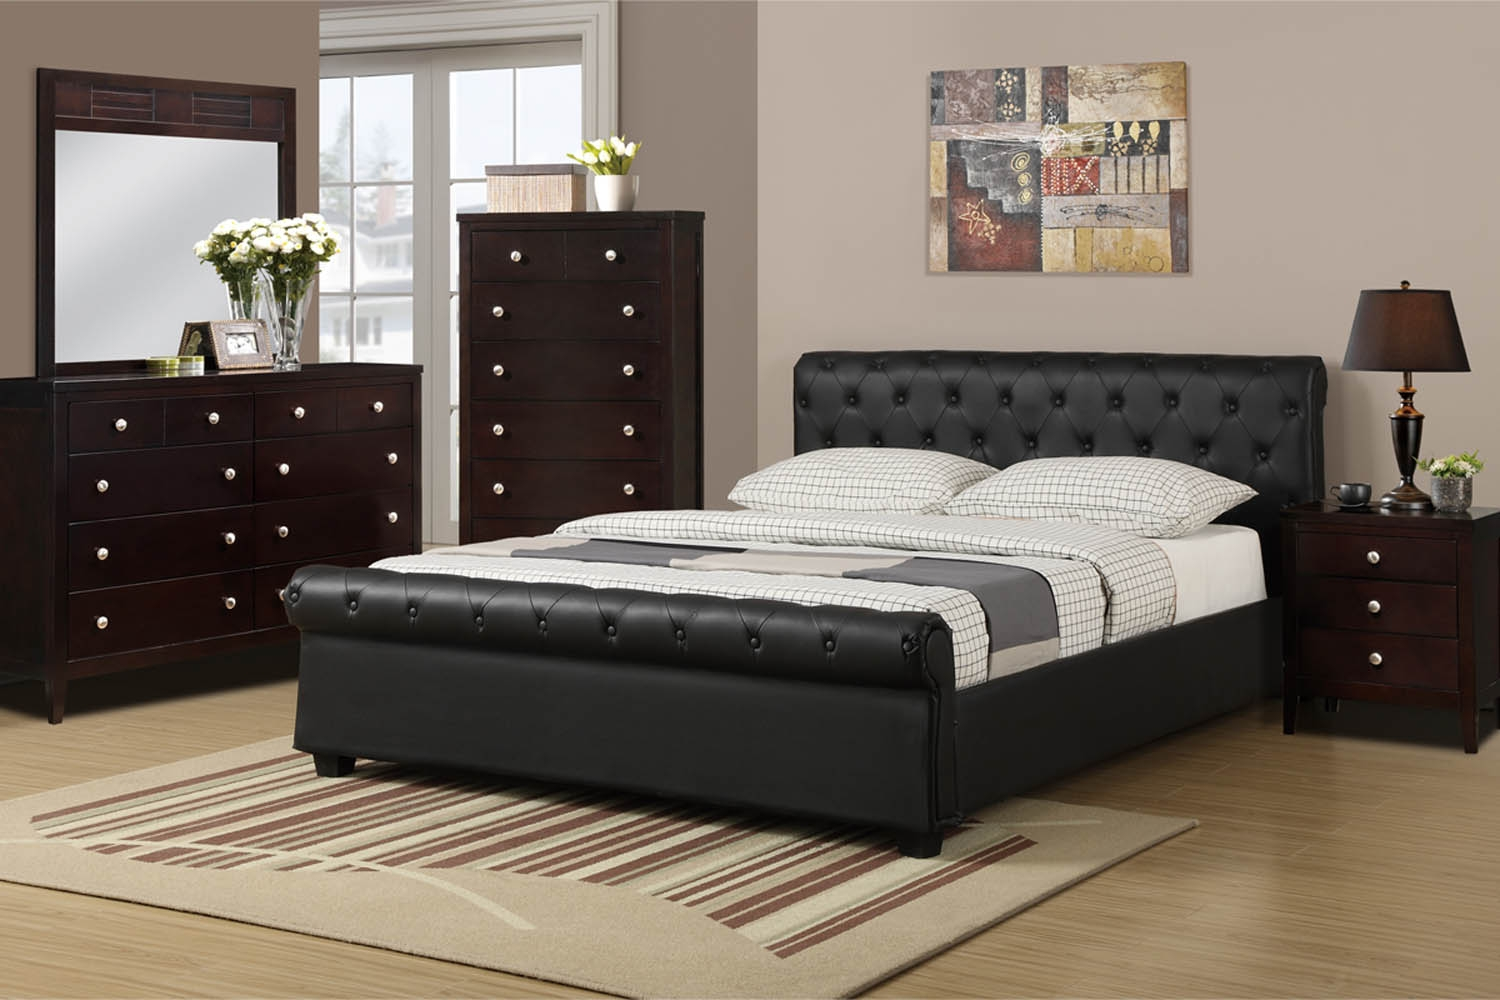 Queen Black Faux Leather Bed Frame With Black Leather Framed Mirror (Photo 14 of 15)